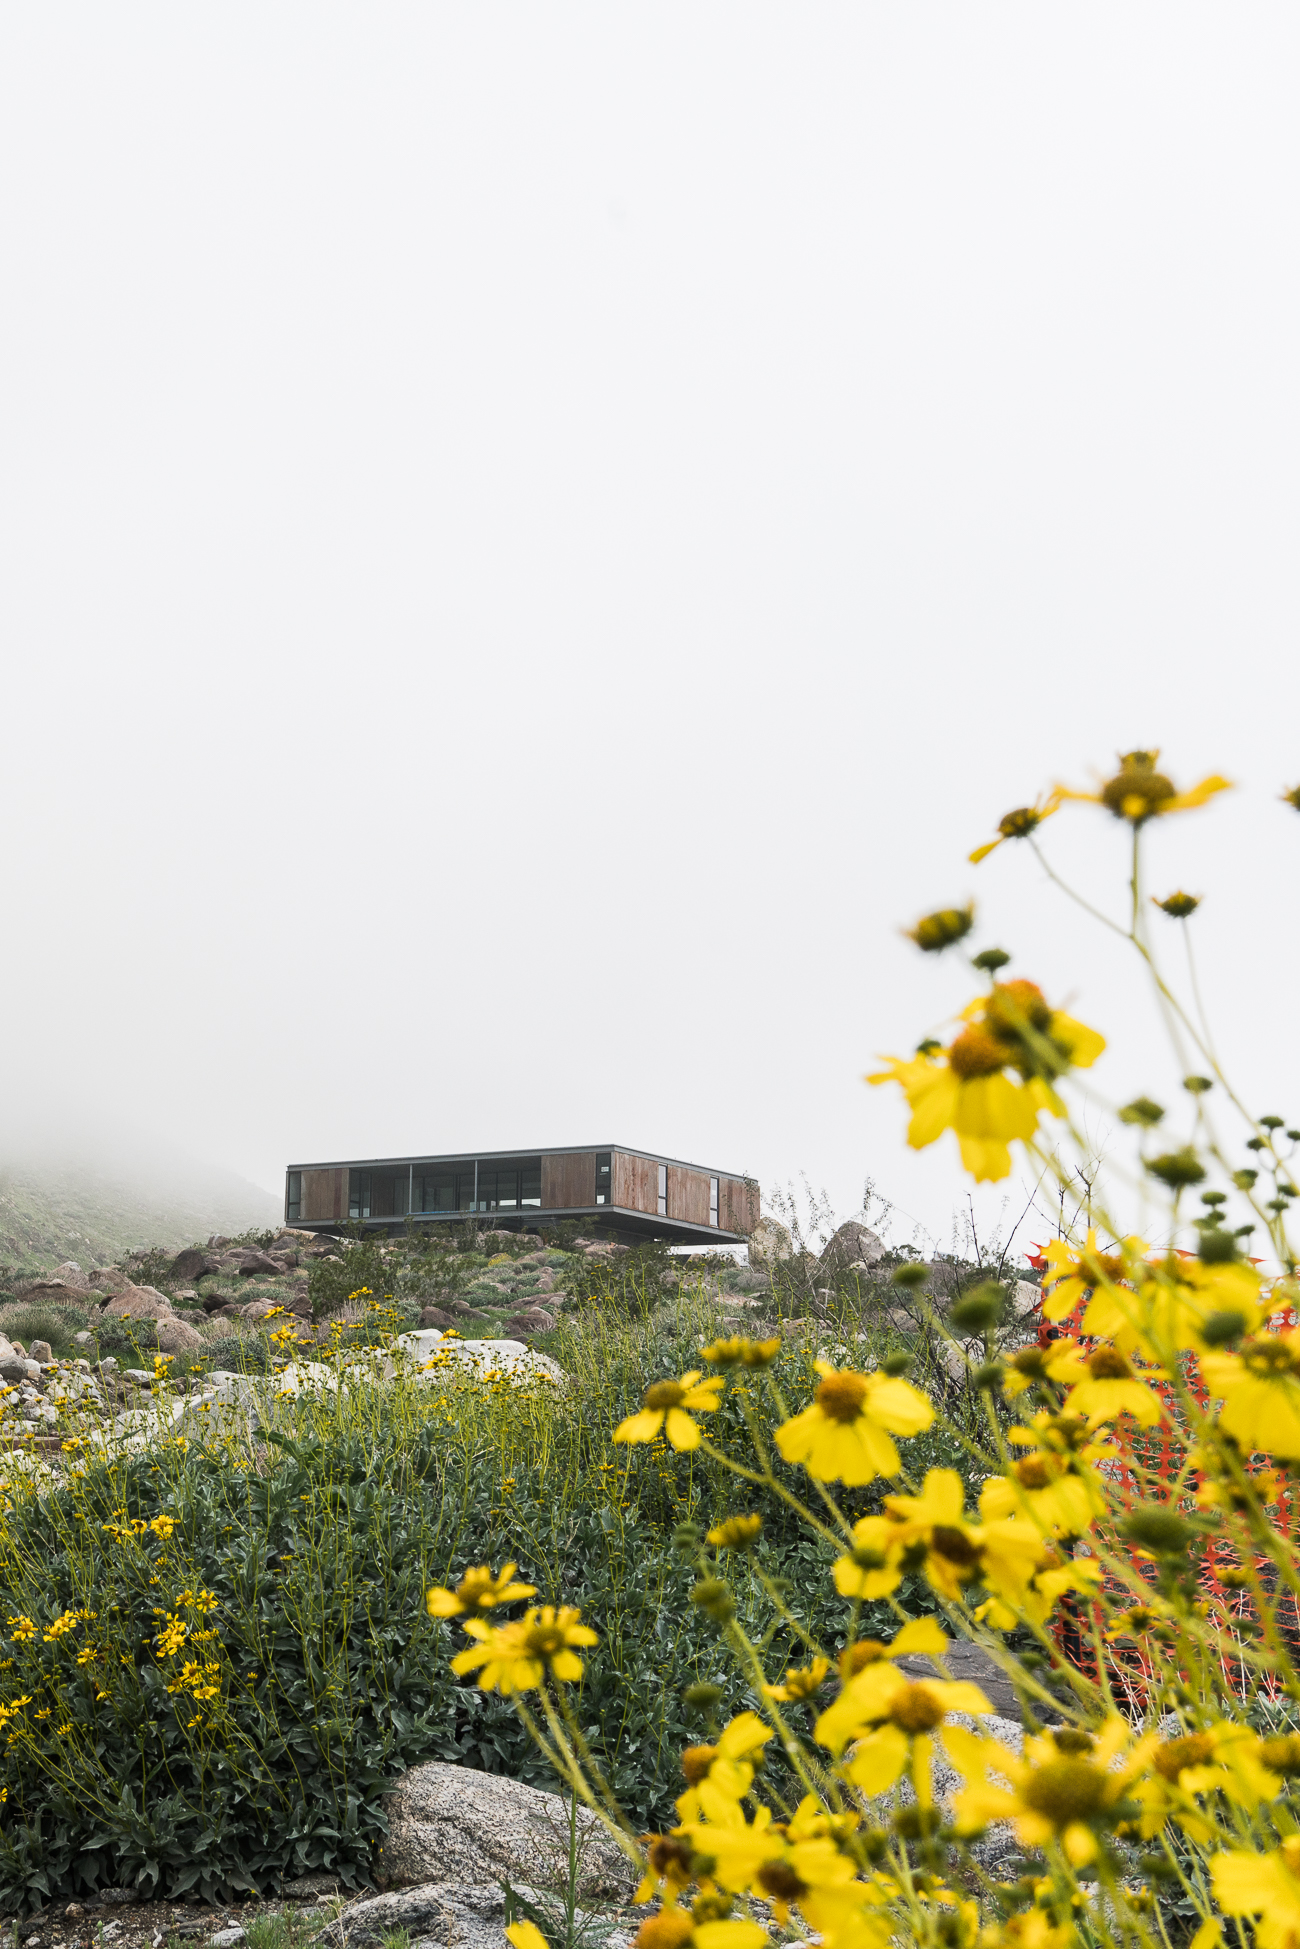 Al Beadle House - Chino Canyon Project / See and Savour